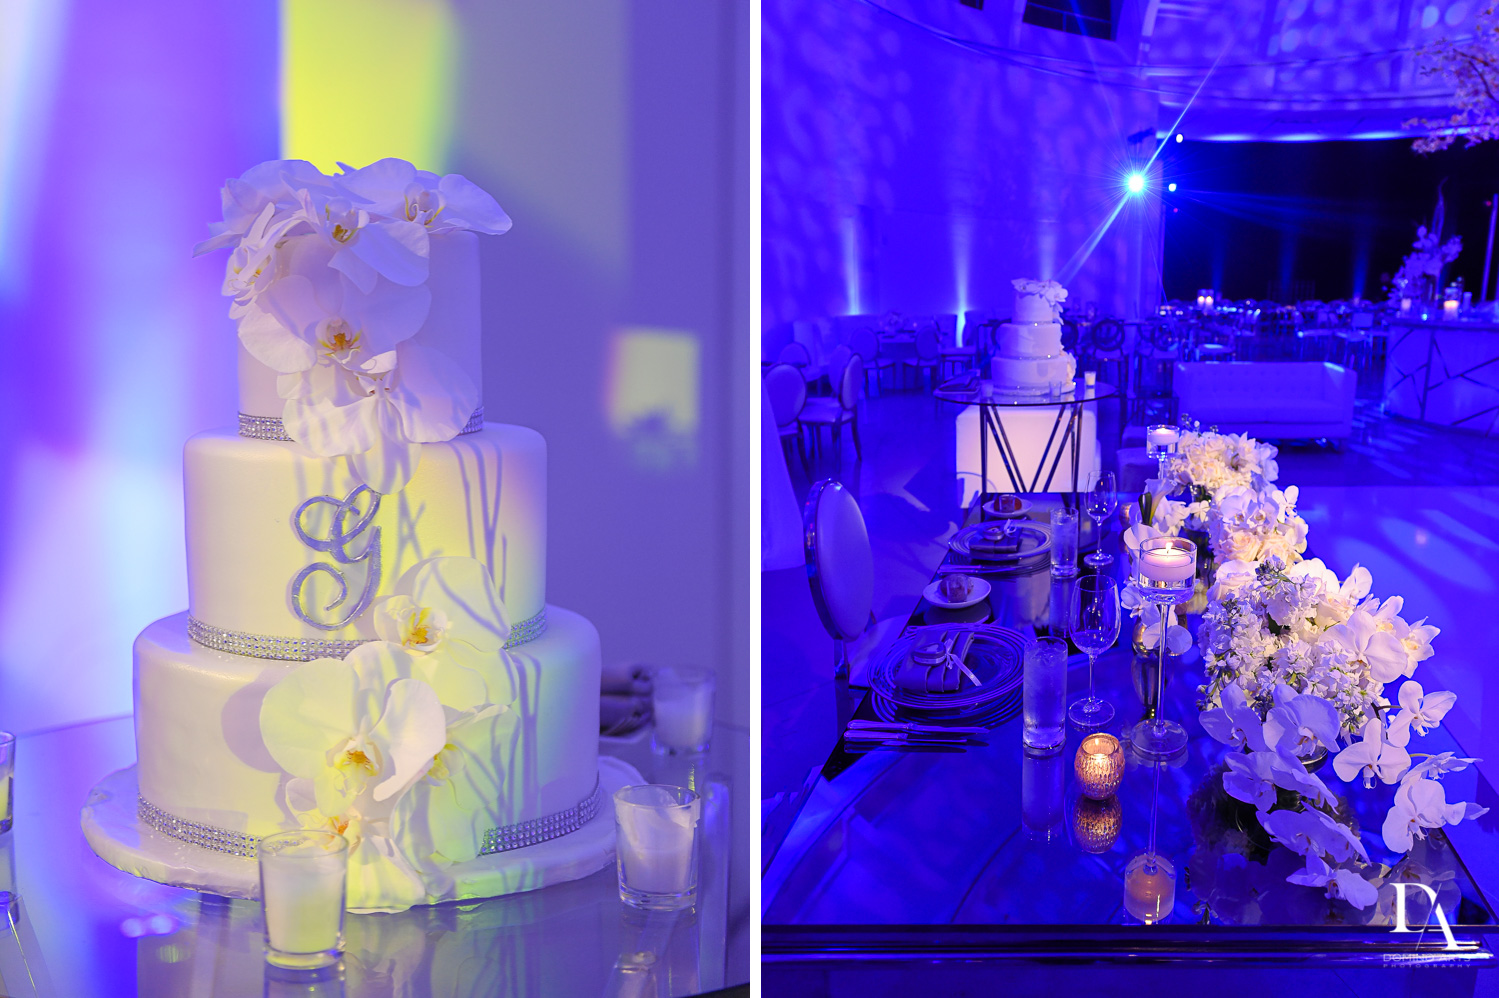 Wedding cake picture in contemporary and elegant design at Faena Hotel Miami Beach